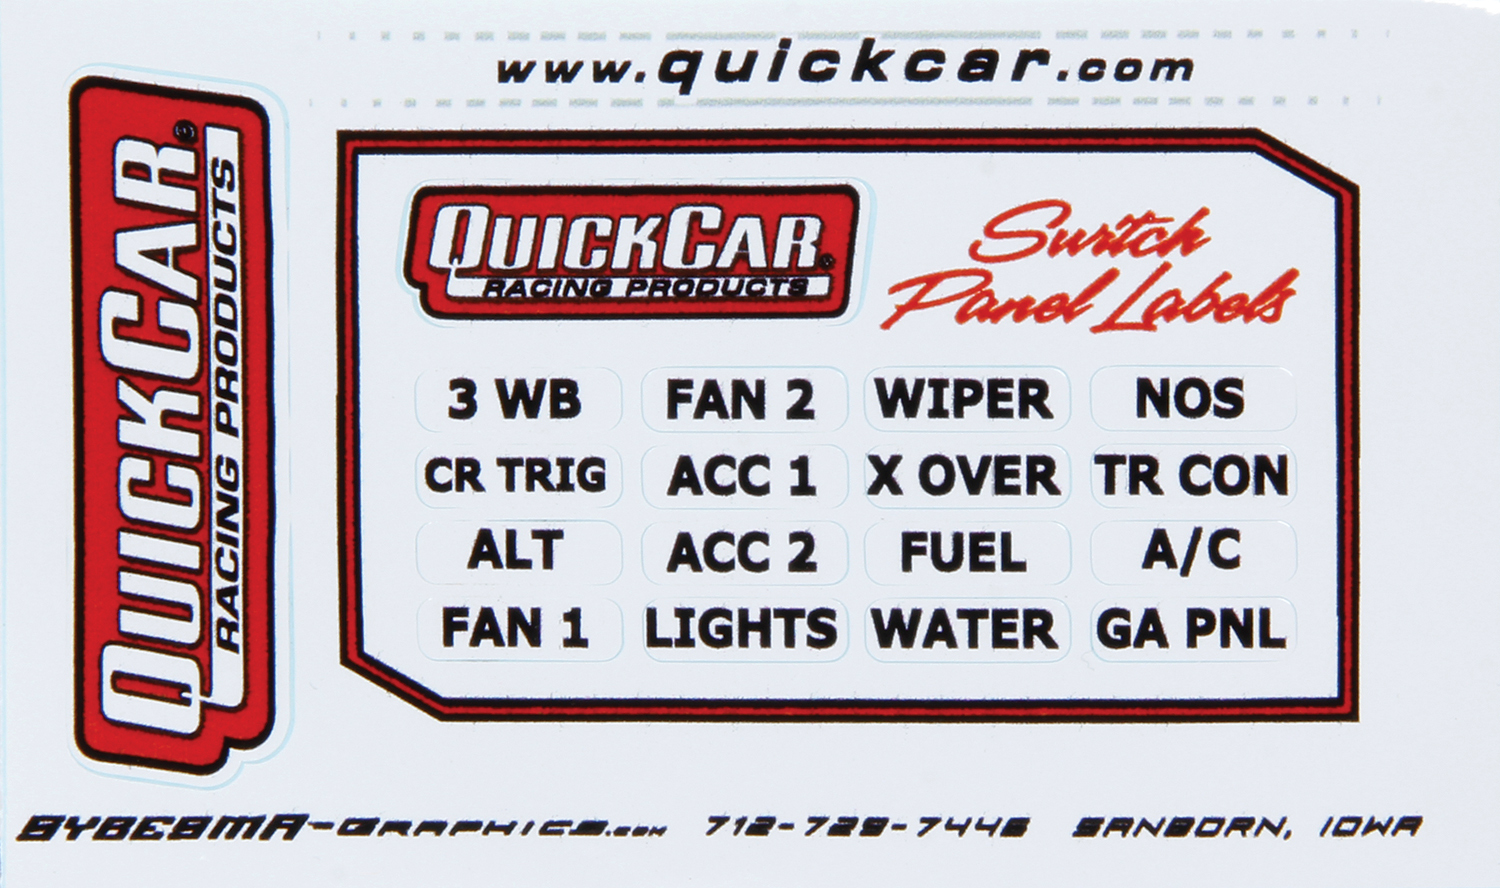 QuickCar 50-003 Information Sticker, Switch Panel, 16 Various Functions, 6 or More Switches, Quickcar Switch Panel, Each